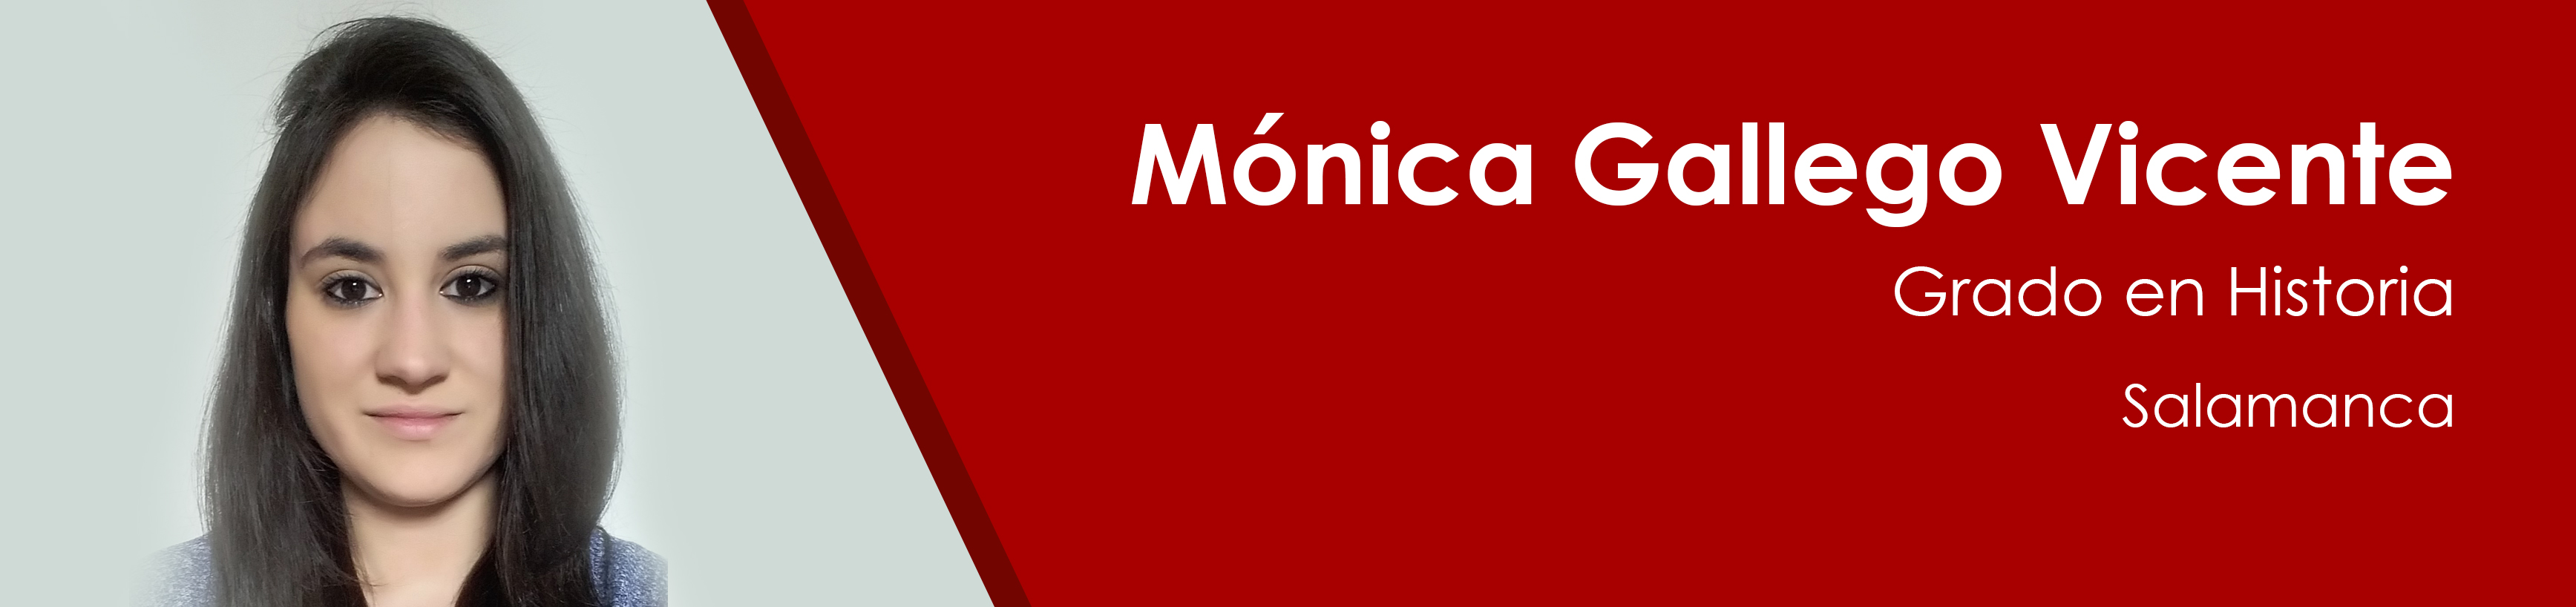 monica-gallego-destacada